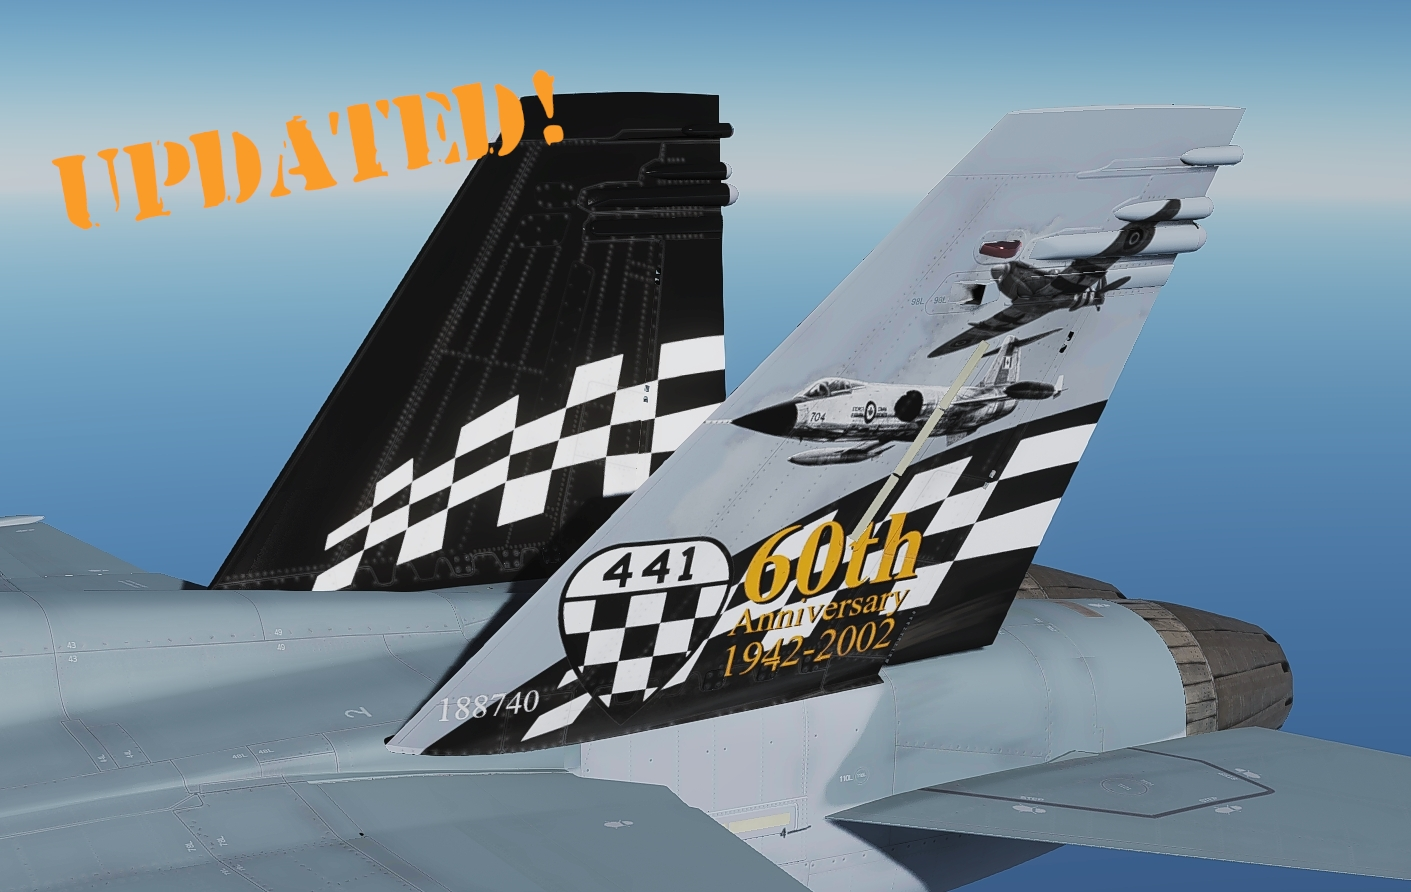 441 Sqn 60 Years Colour tail art